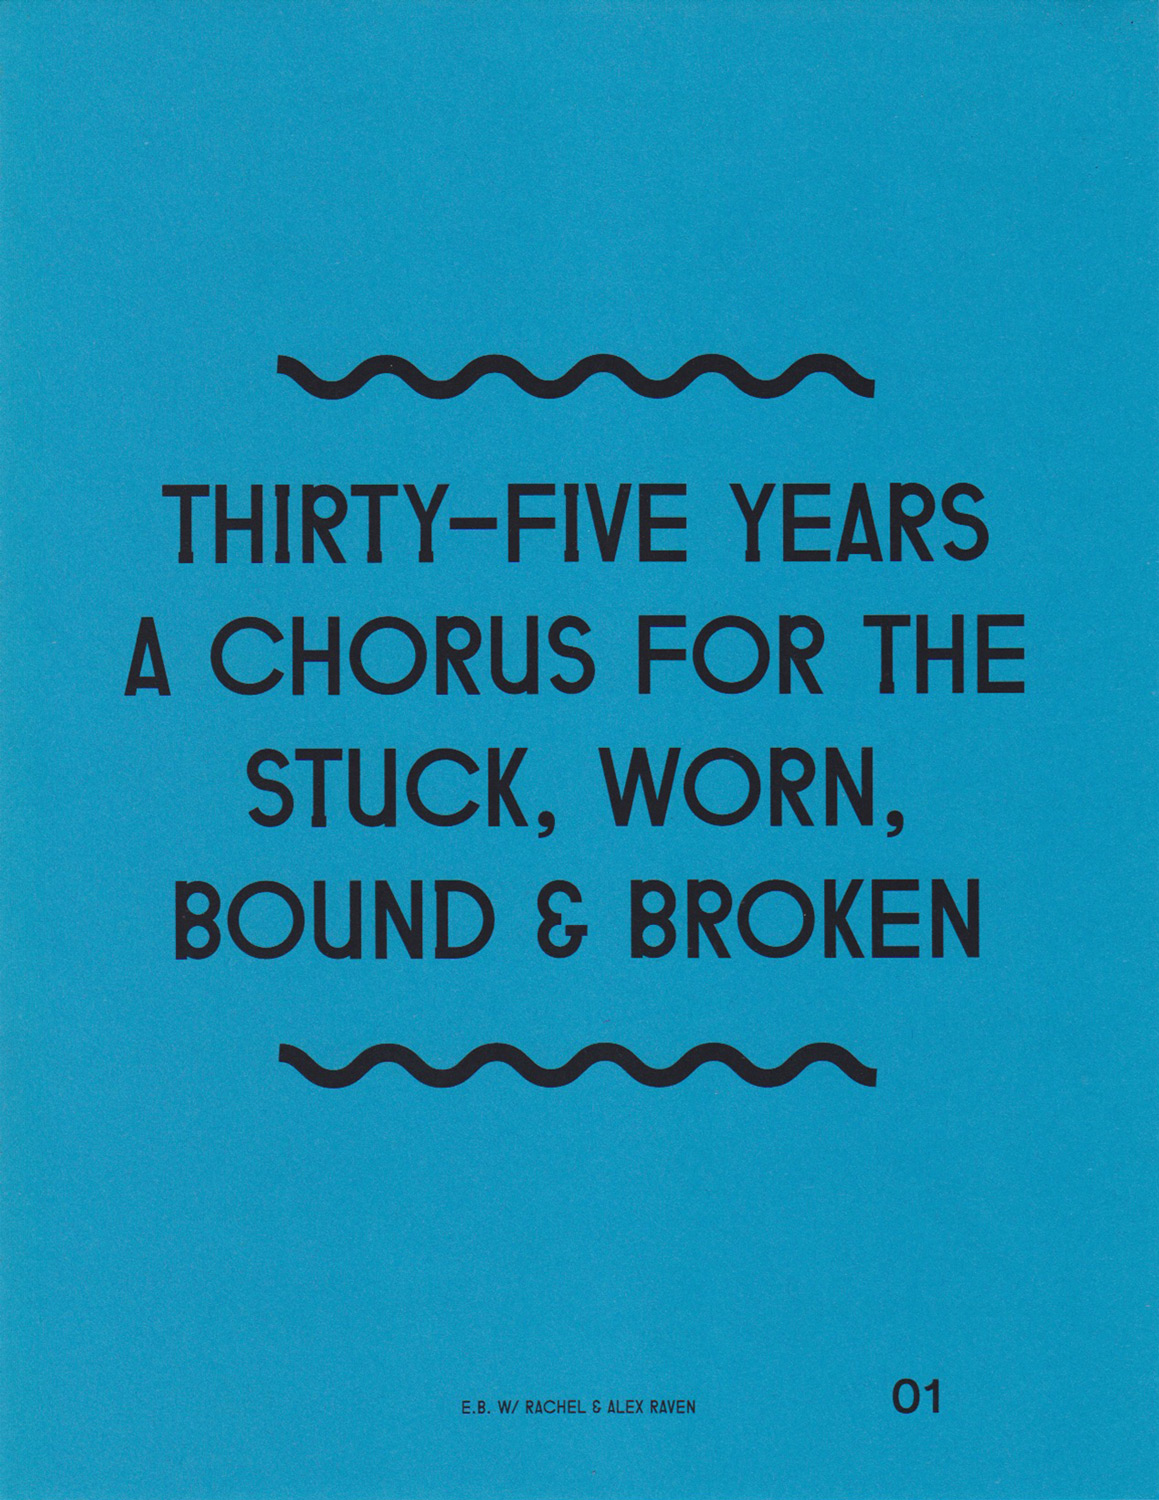 Thirty-five years a chorus for the stuck, worn, bound, & broken, 2012 & 2014